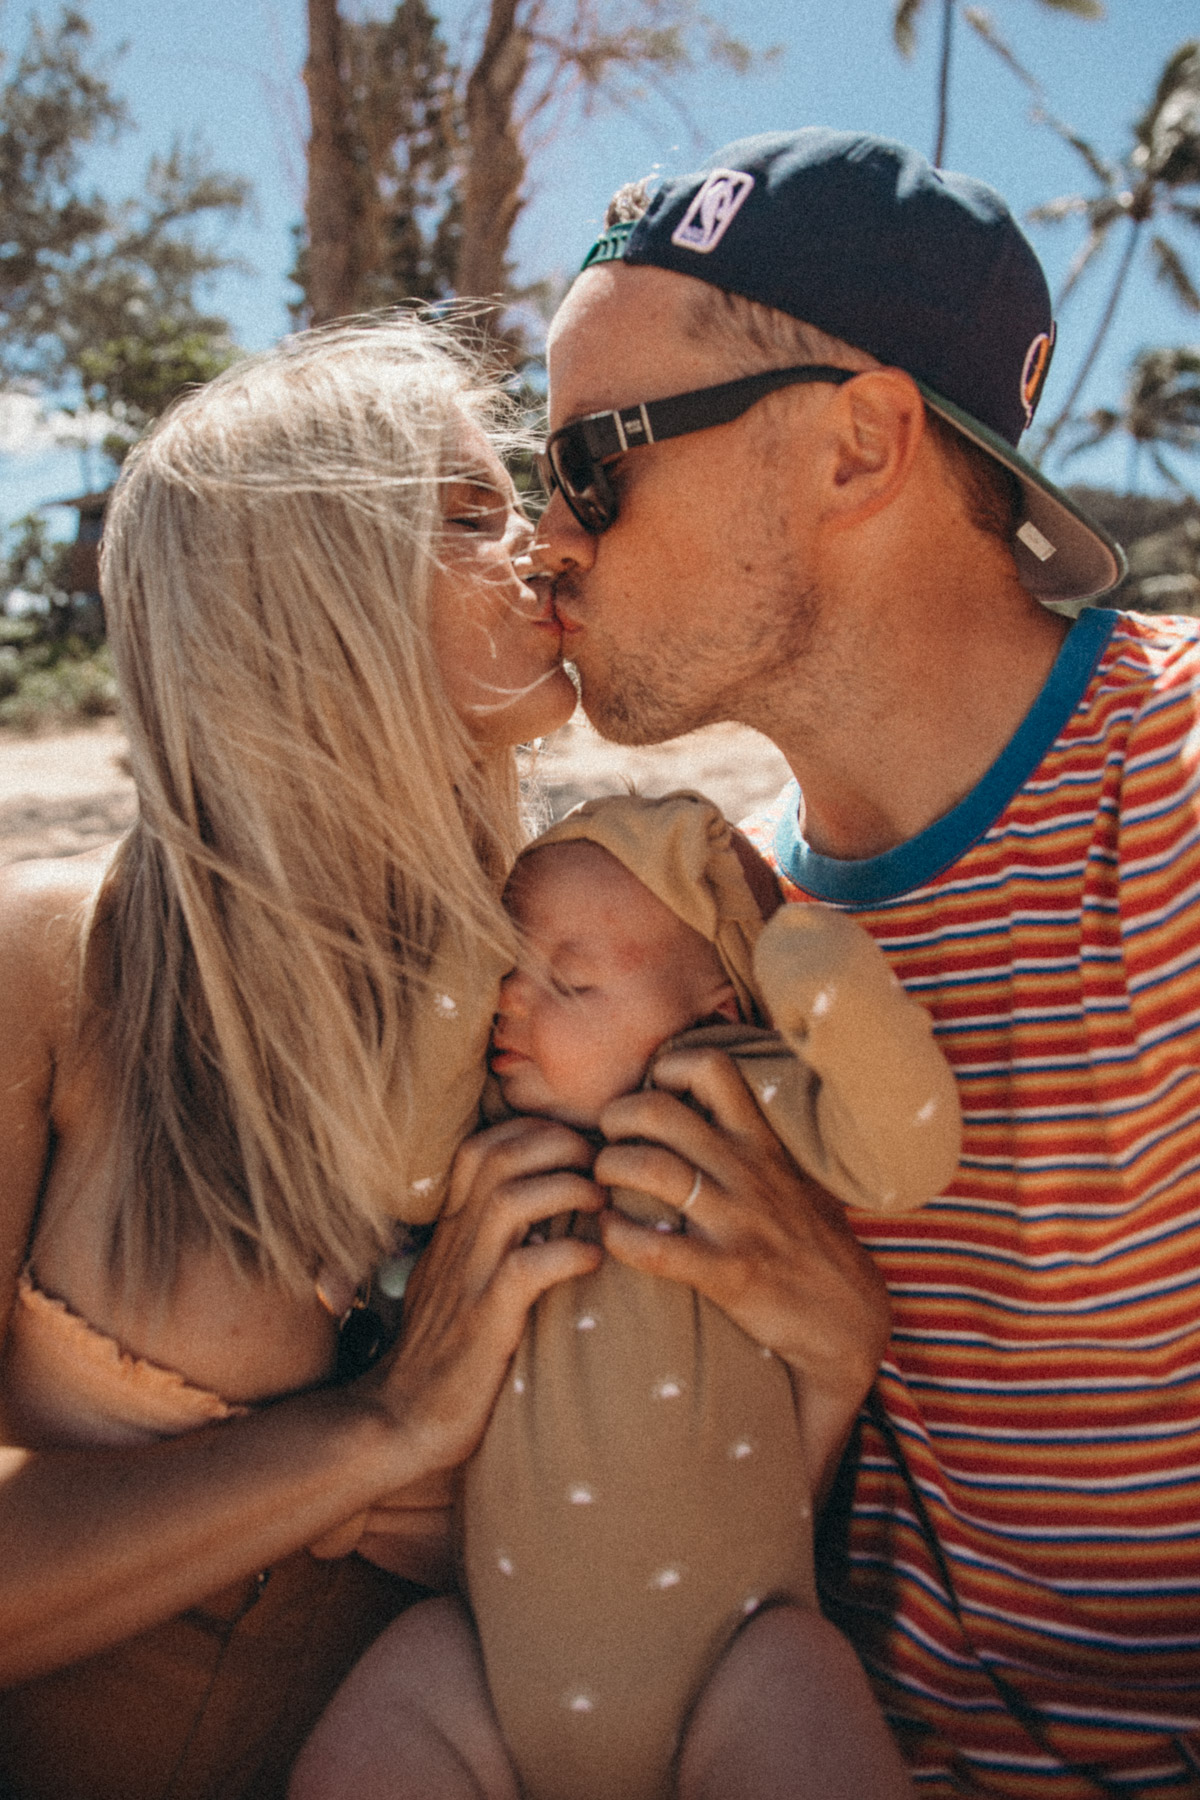 Amber and David kiss while holding Frankie on the beach in Hawaii. Barefoot Blonde | Amber Fillerup Clark